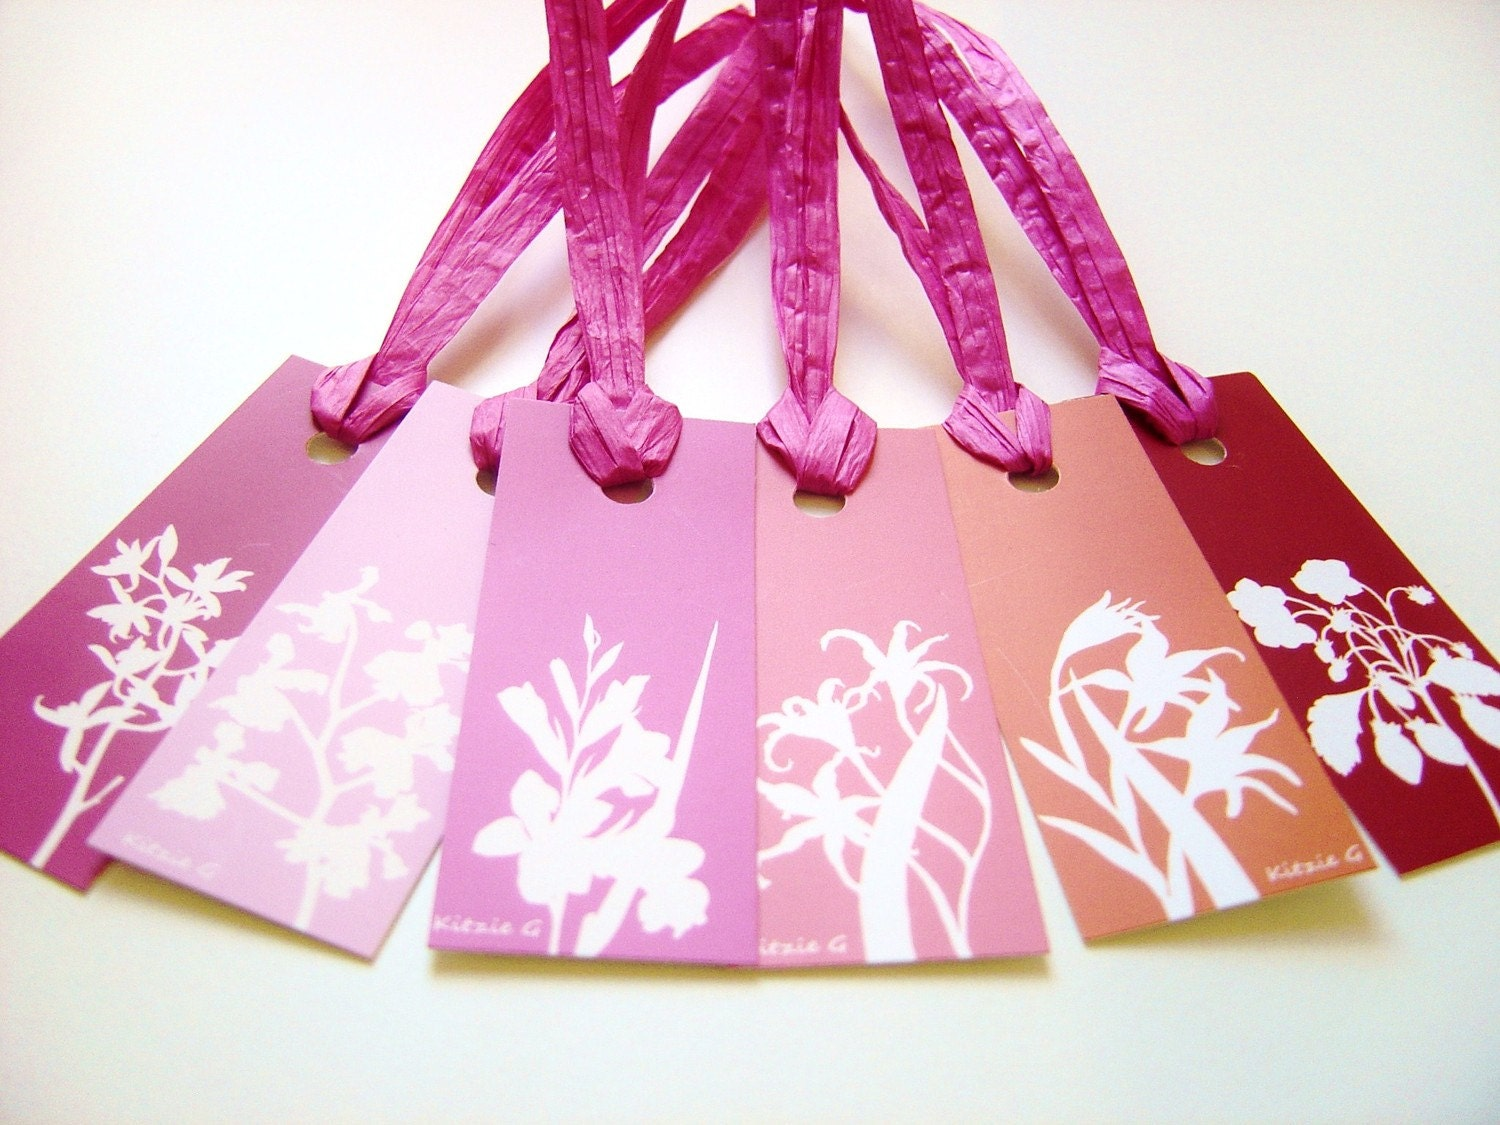 Gift Tags - Set of 12 in Pink, Red and Orange Botanical Floral Papercut Designs